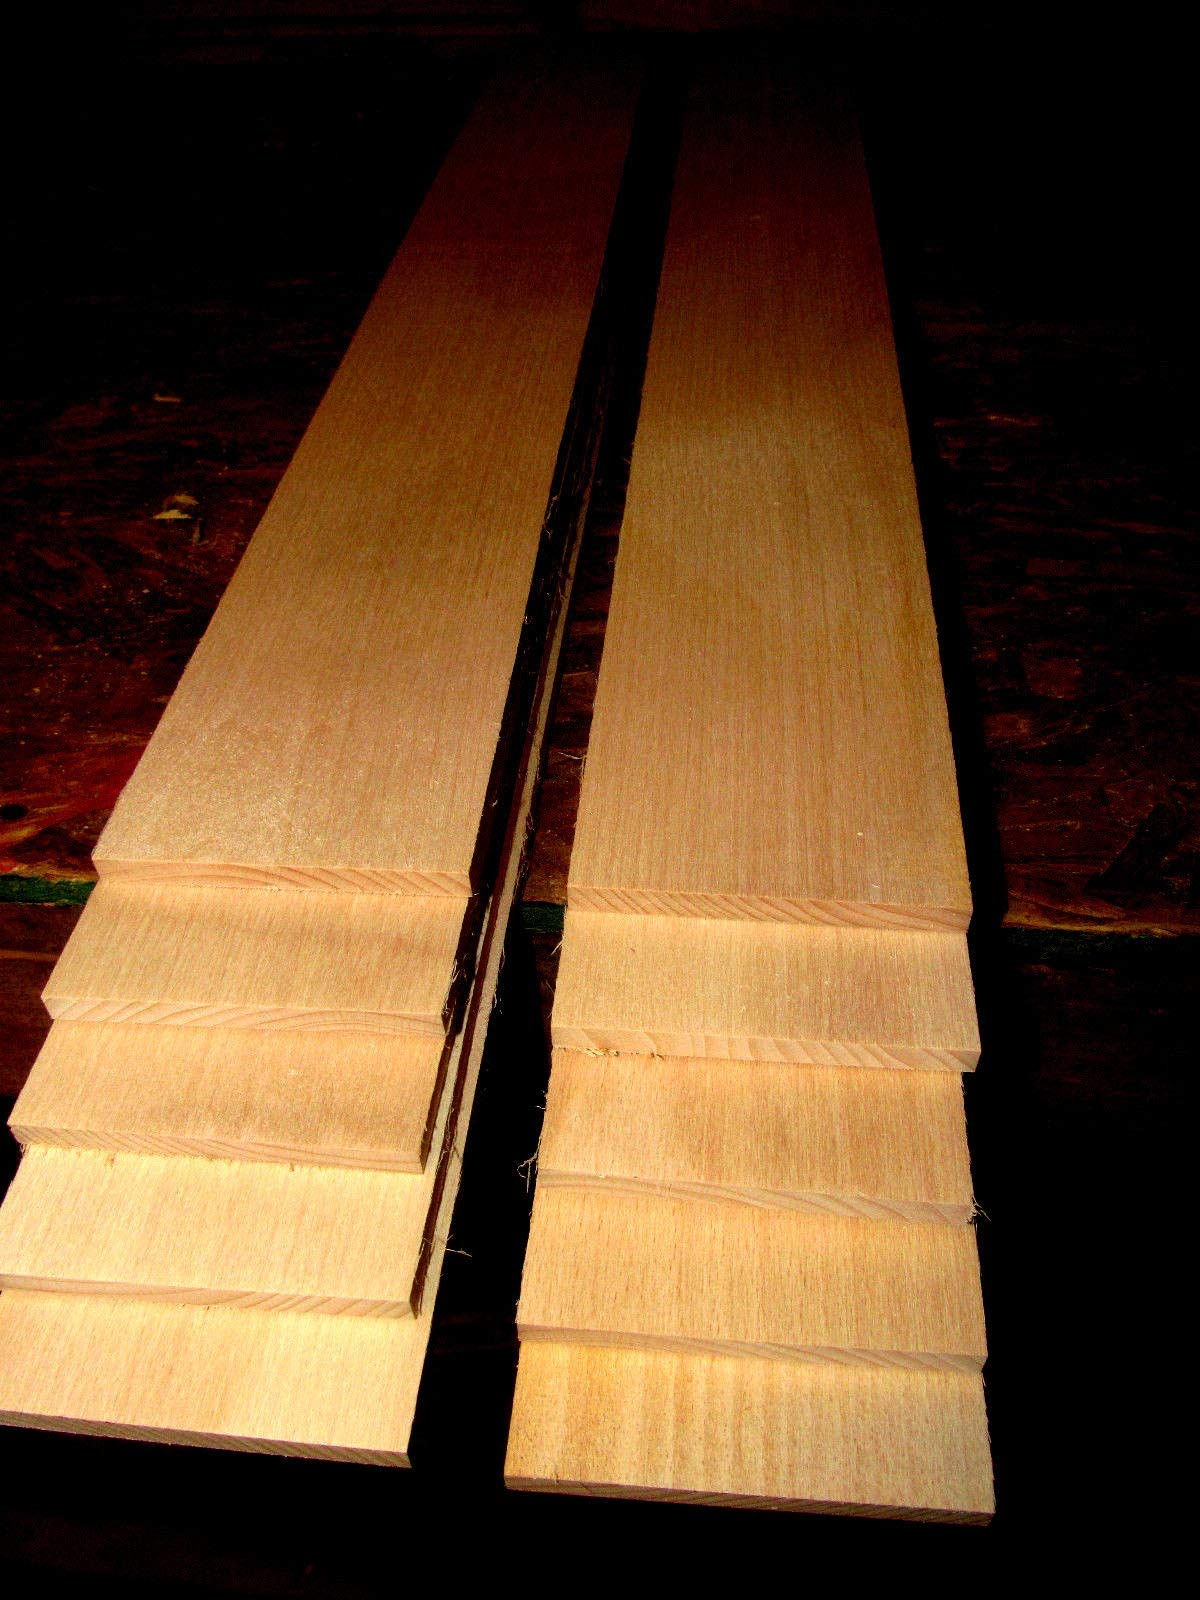 Packages of Thin Premium KILN Dried, Sanded Beech Lumber Five 24'' X 6'' X 3/8'' by Lotus energy (Image #1)